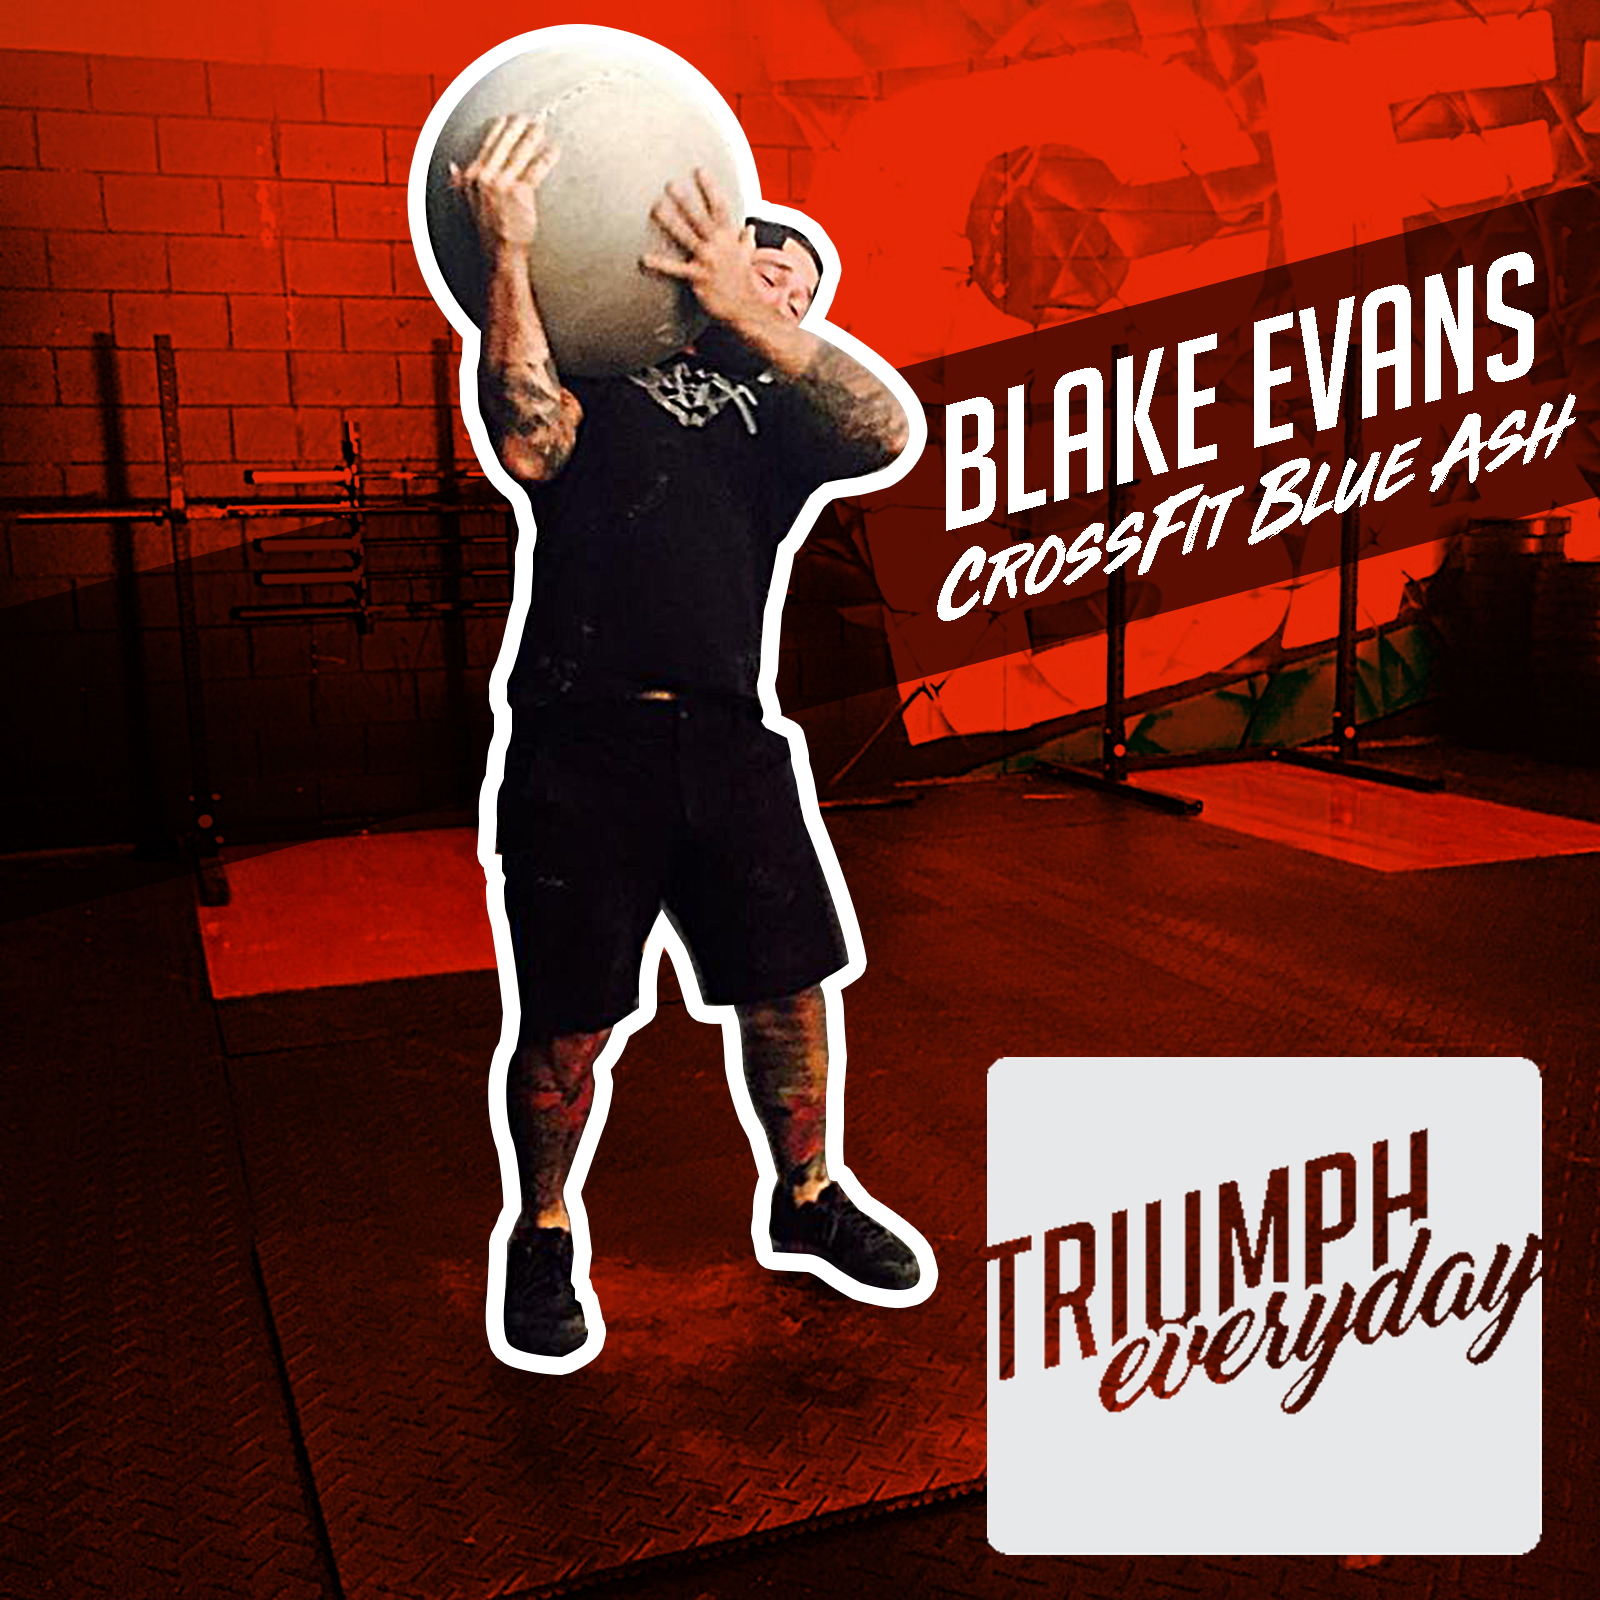 Triumph Everyday blake Soundcloud